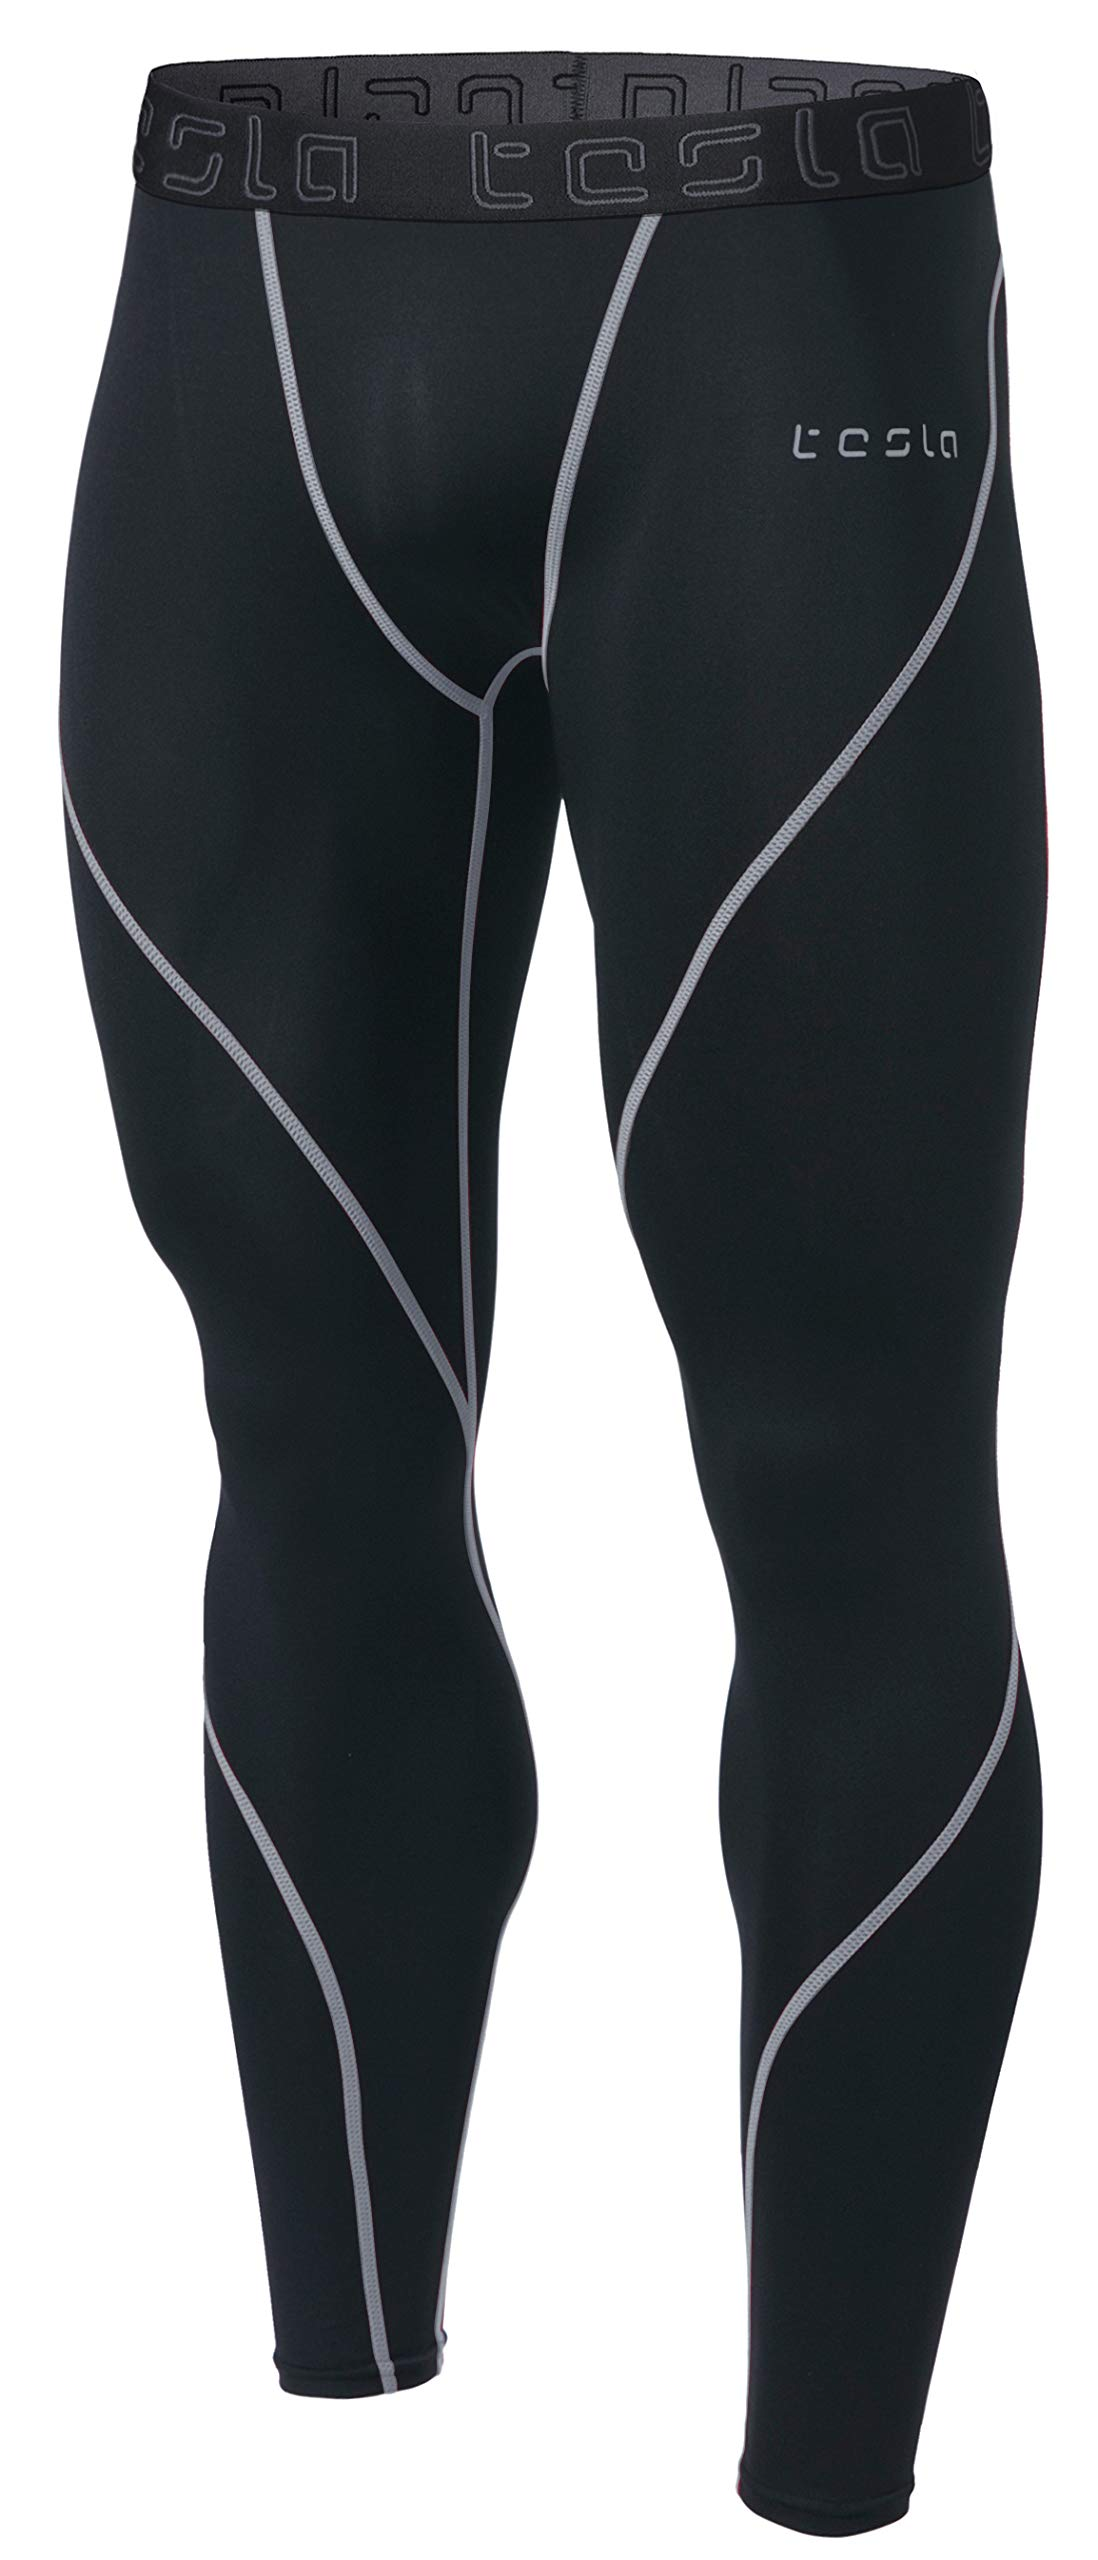 TSLA Men's Compression Pants Running Baselayer Cool Dry Sports Tights, A Athletic(mup19) - Black & Light Grey, 2X-Large by TSLA